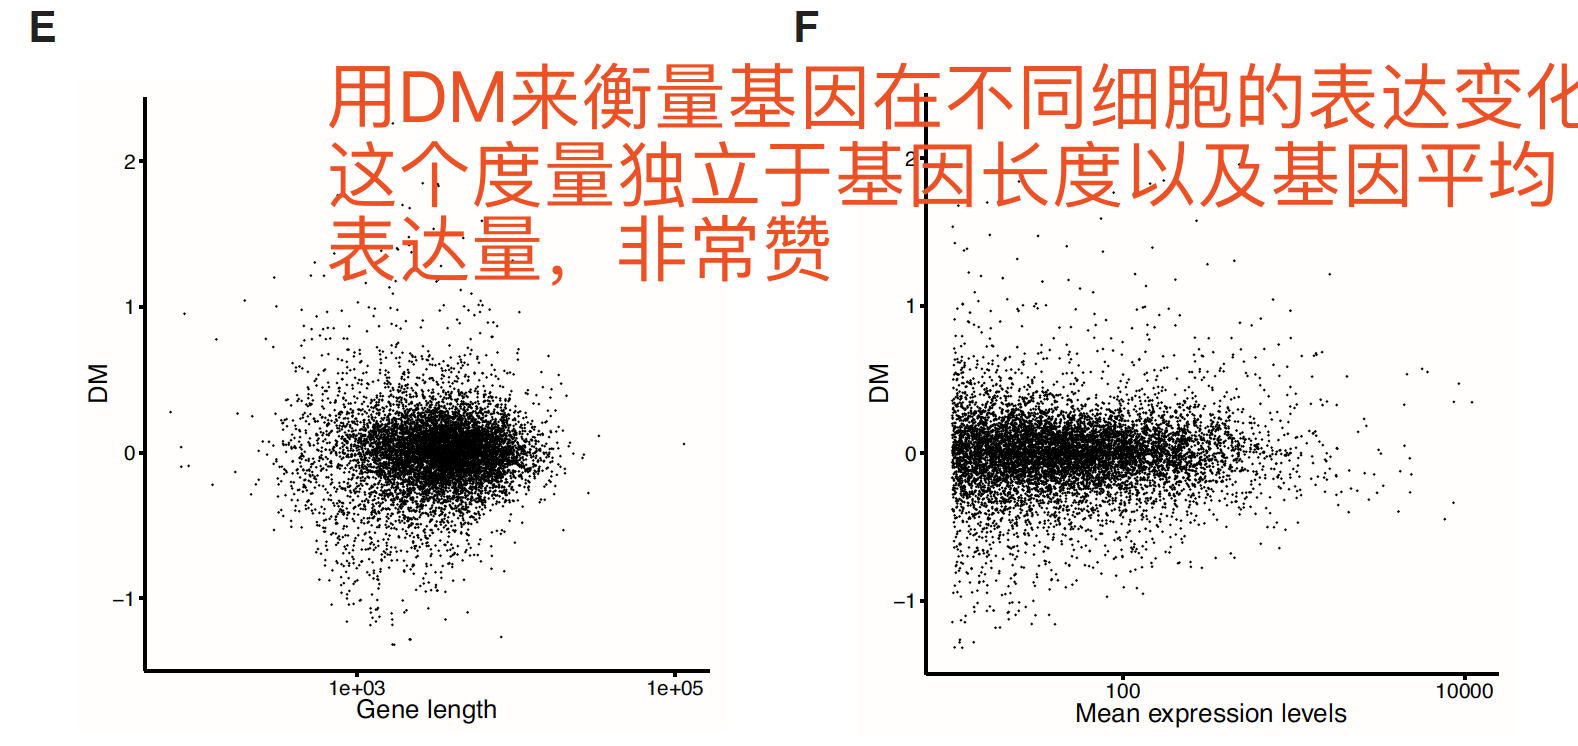 dm-gene-length-expression